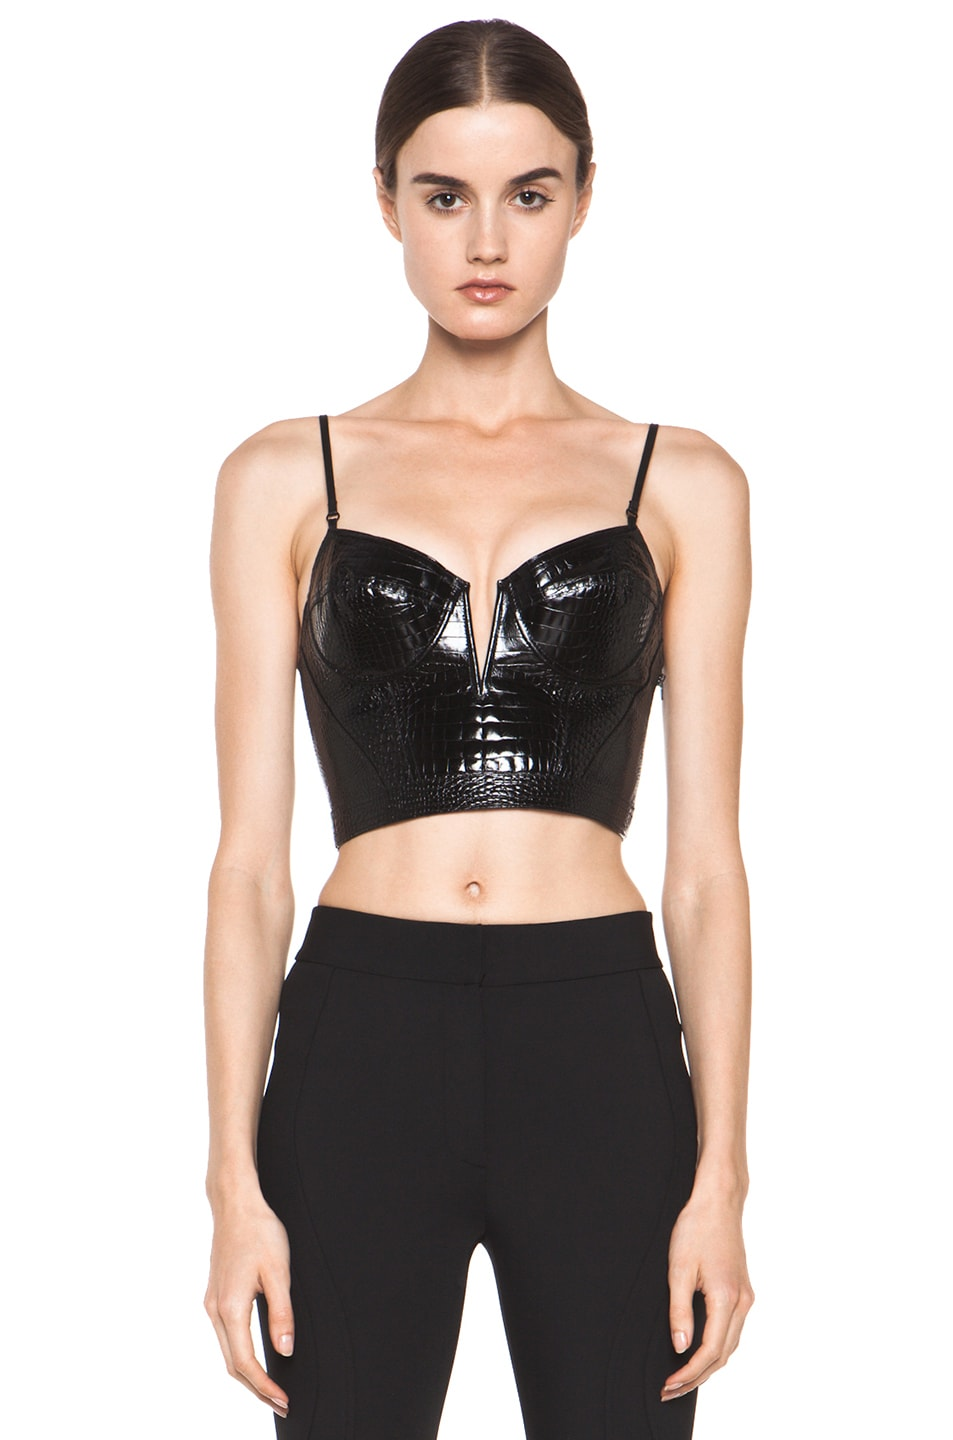 62f5fa592 Image 1 of Alexander Wang Bustier Contouring Seam Top in Black